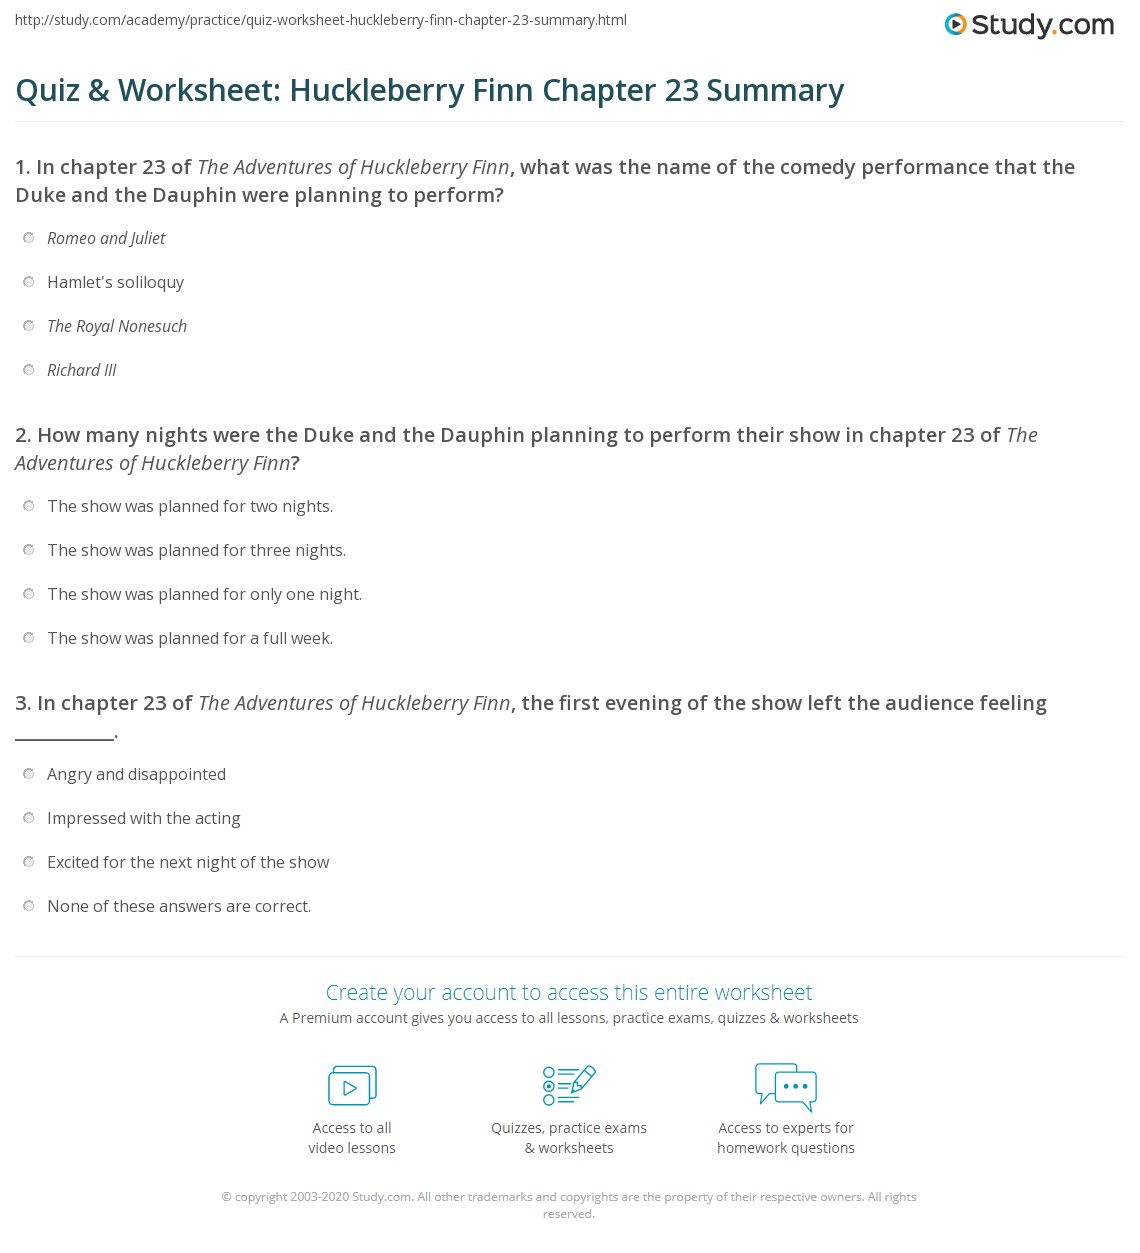 quiz worksheet huckleberry finn chapter summary com print the adventures of huckleberry finn chapter 23 summary worksheet